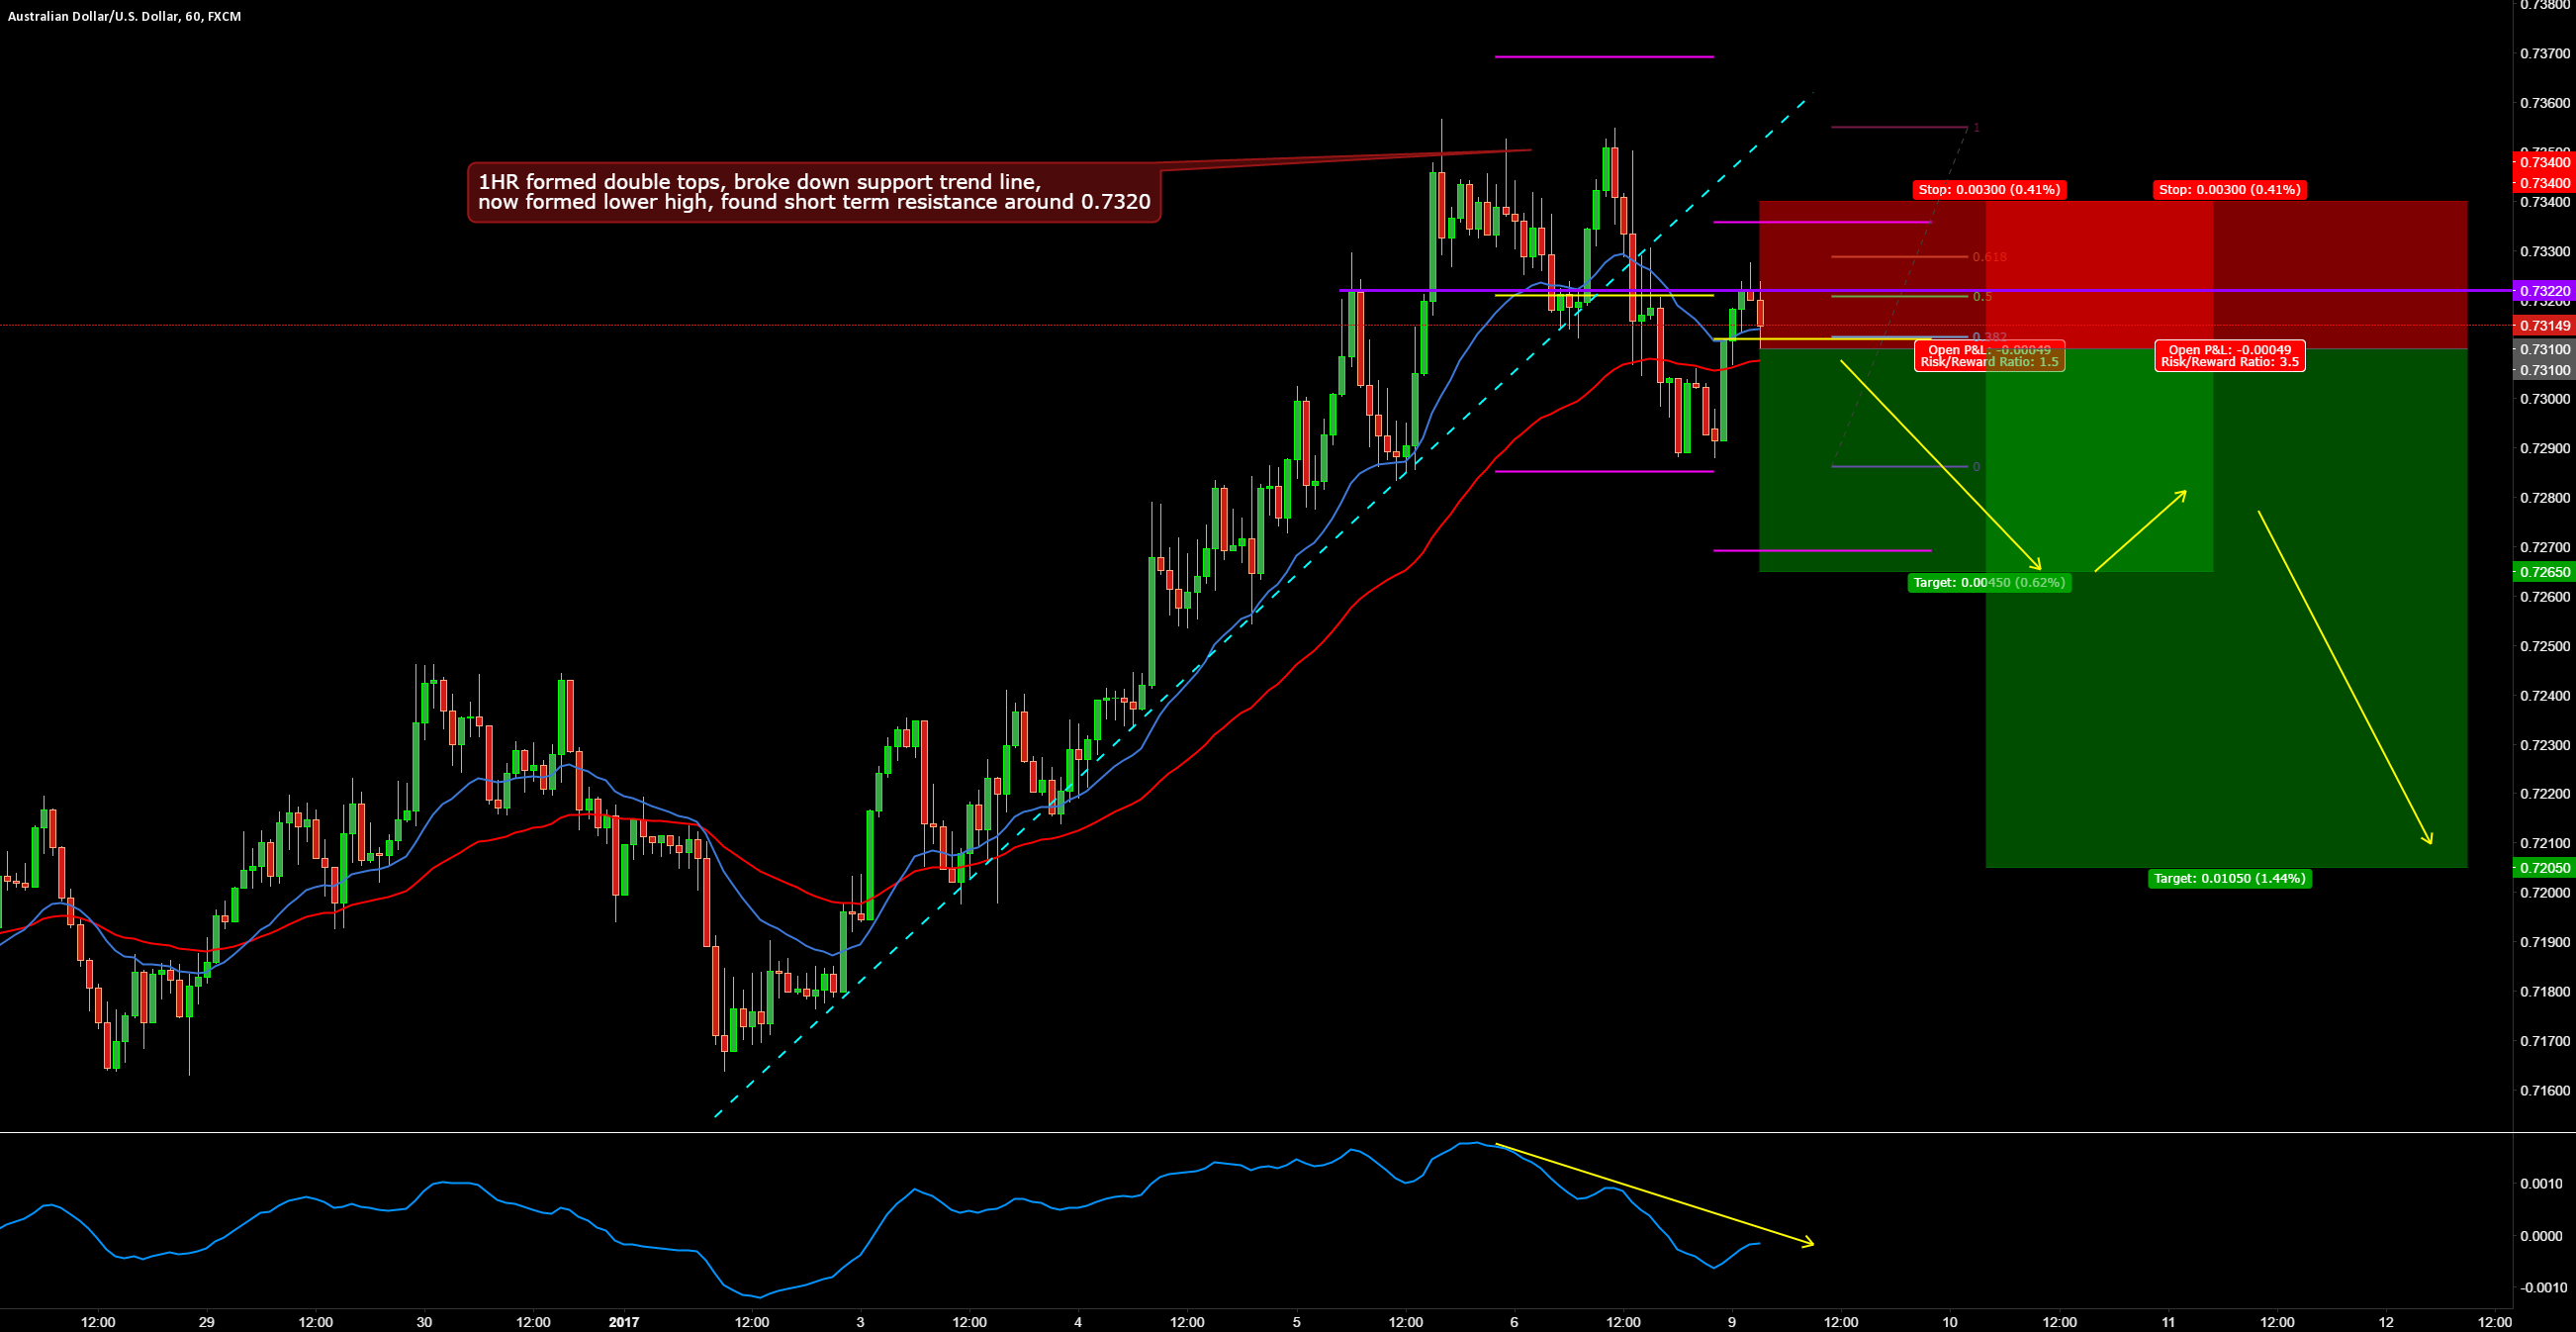 AUDUSD SHORT 1 HR BREAK AND RETEST TRADE SETUP